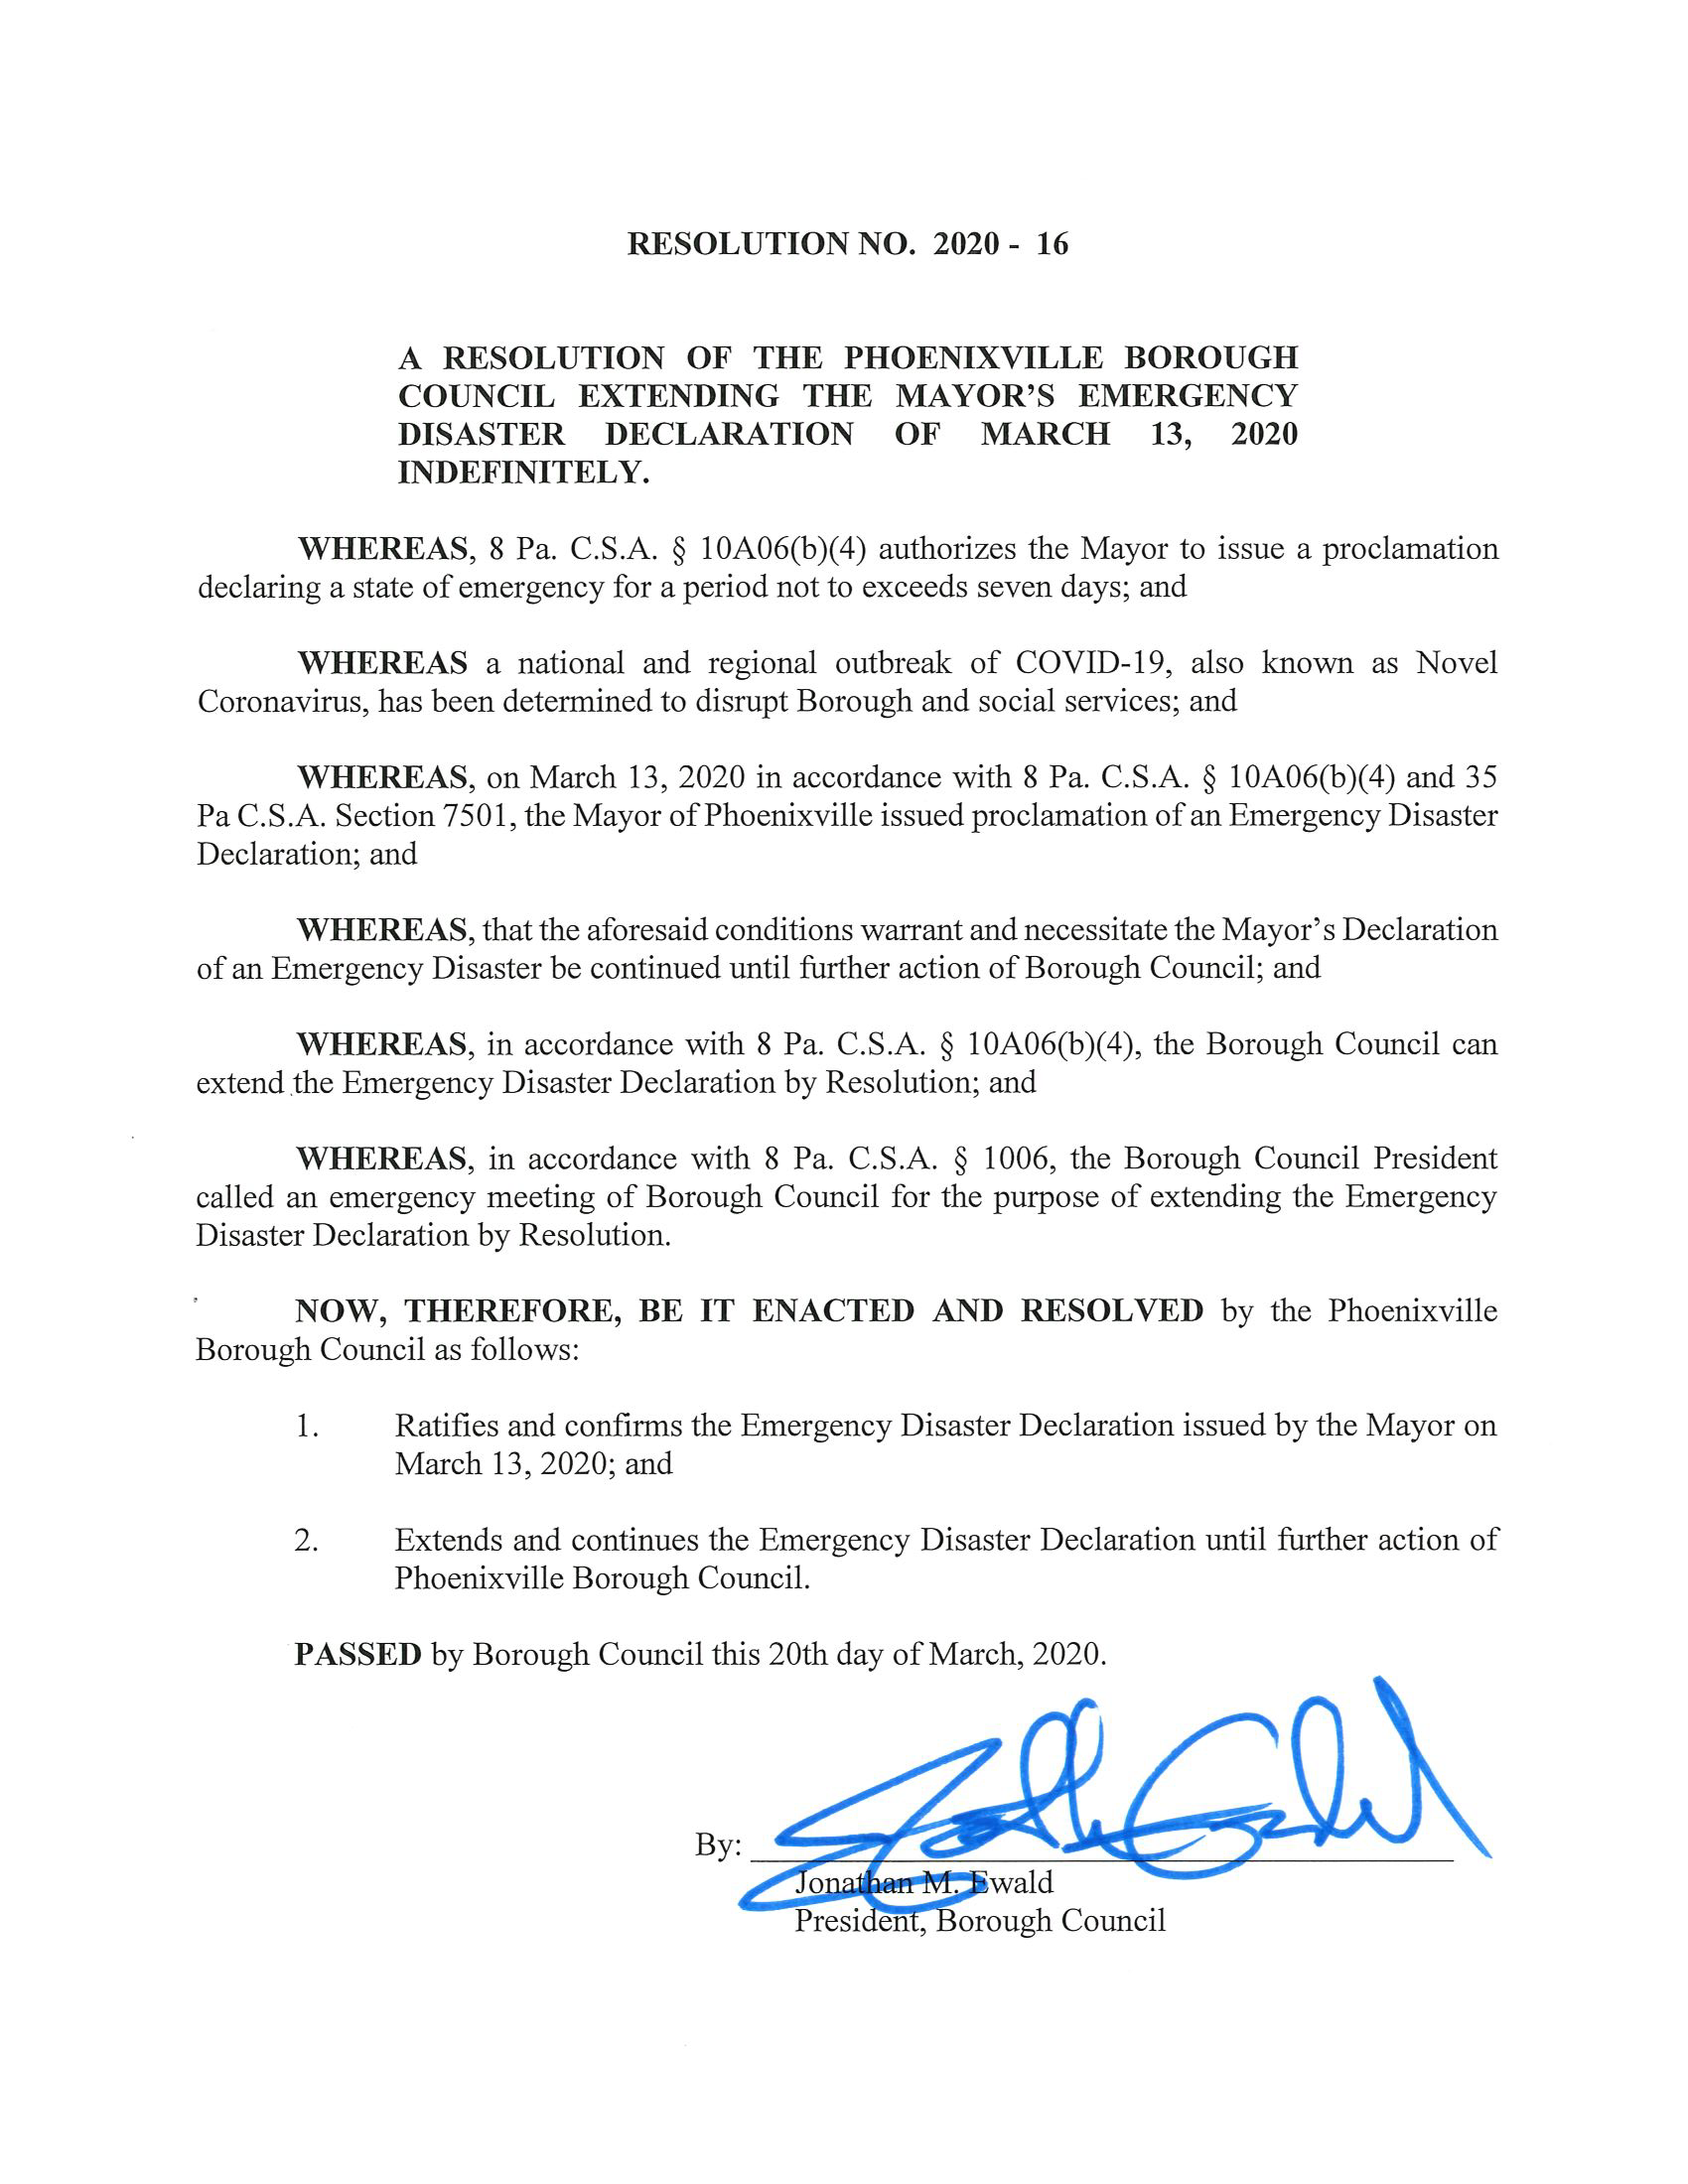 Council Resolution 2020-16 - Emergency Disaster Declaration_Page_1